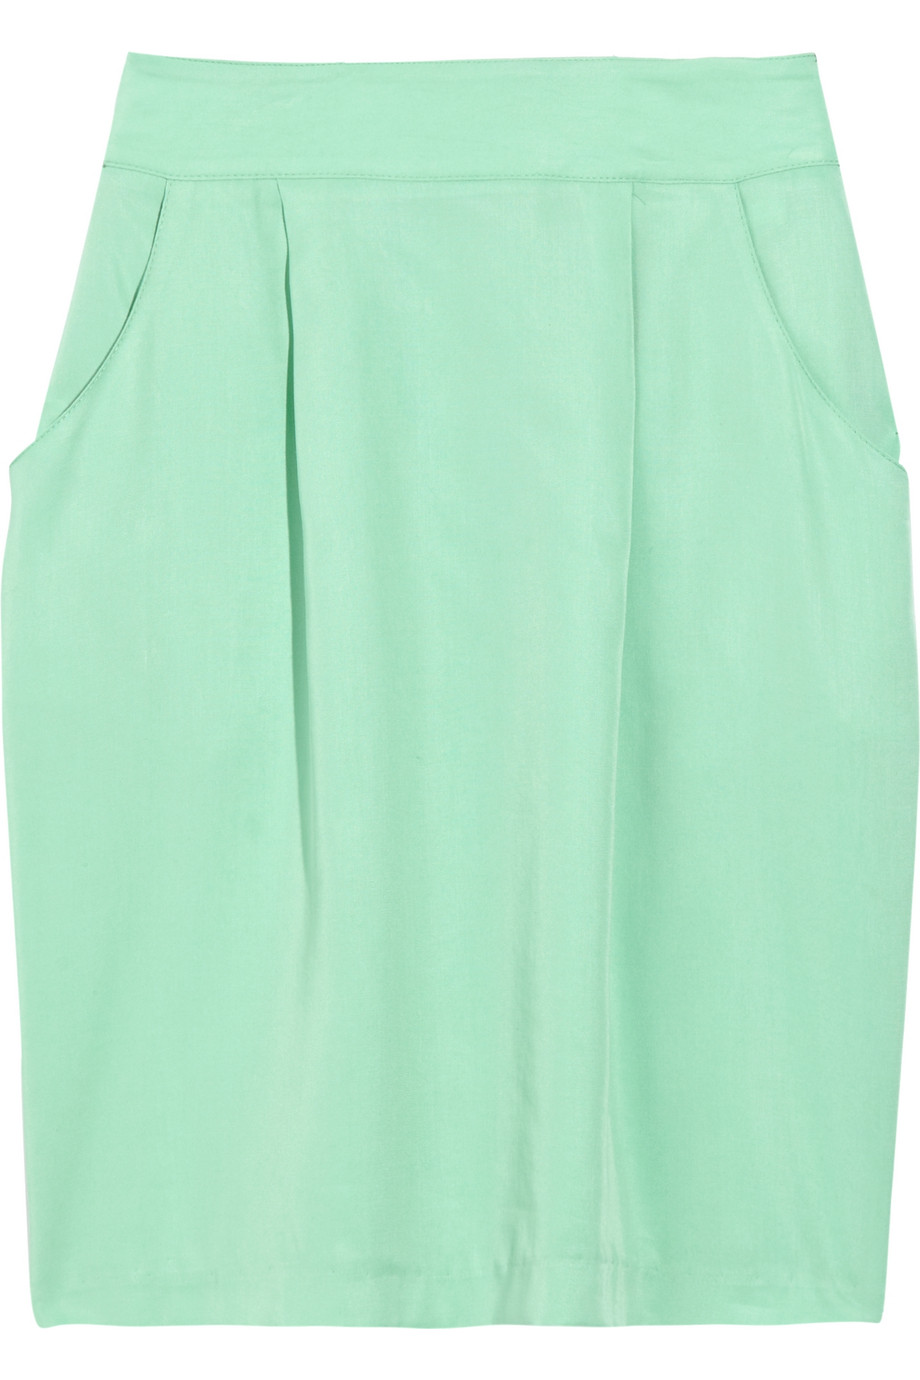 Discount adam crepe pencil skirt